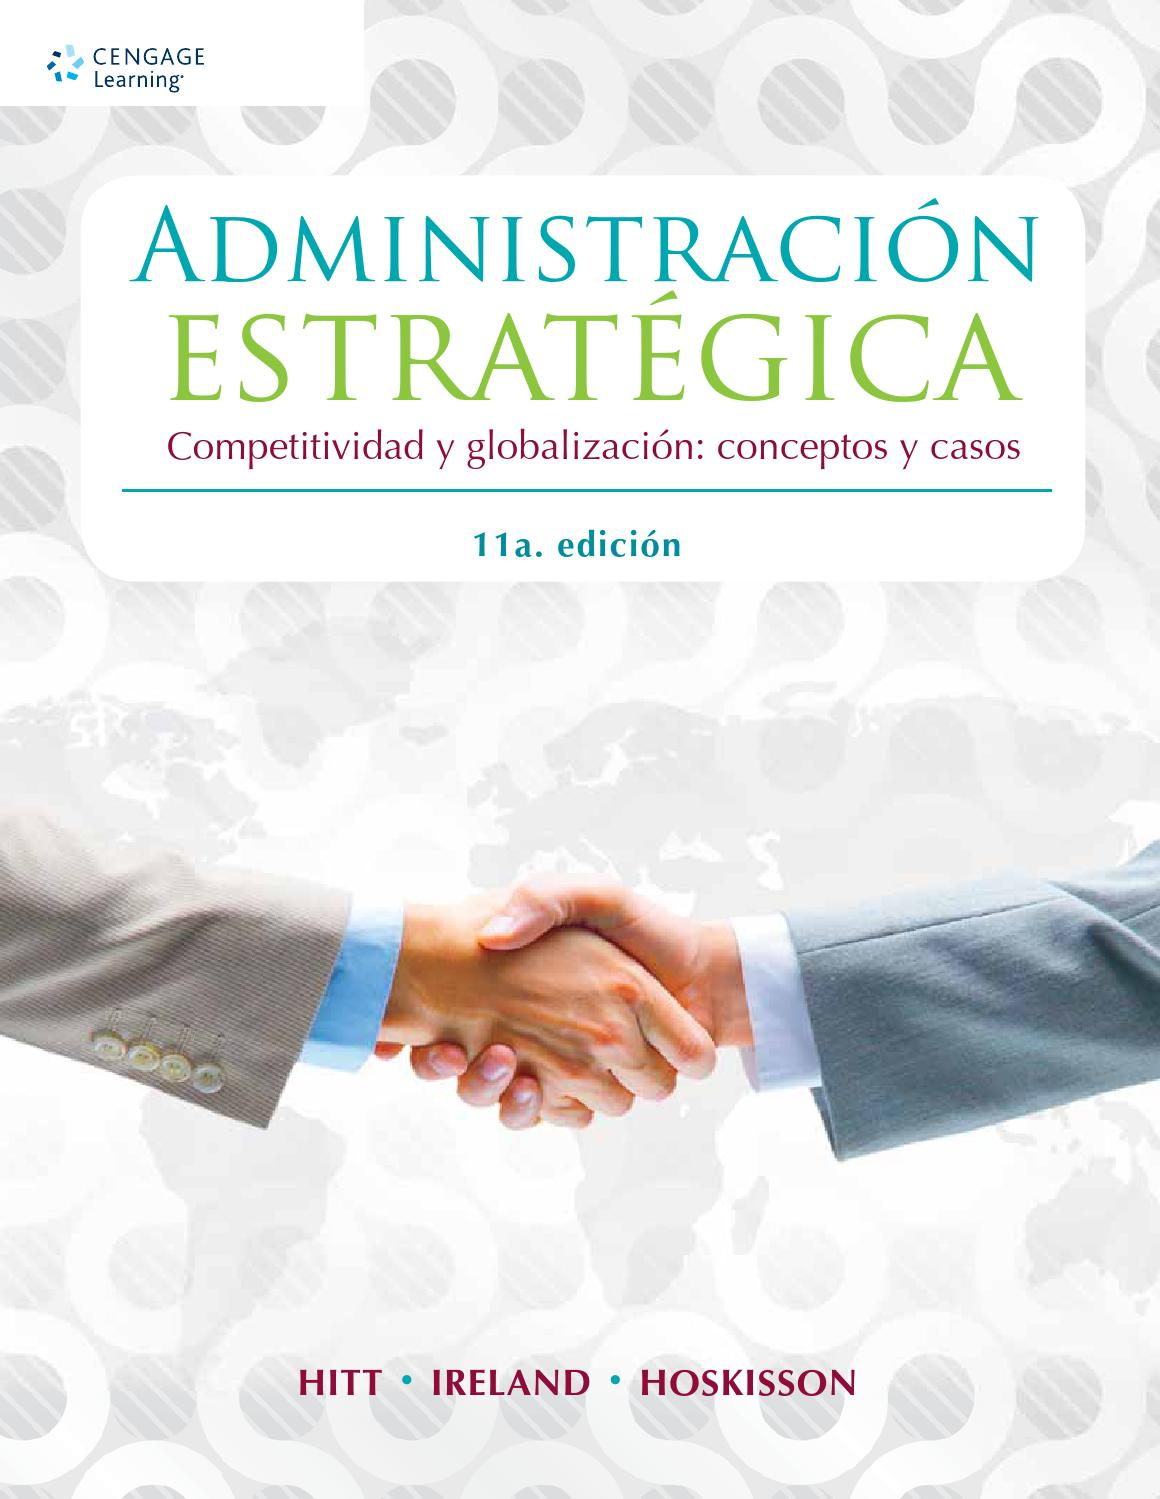 Administraci n estrat gica competitividad y globalizaci n conceptos y casos 11a ed michael hitt by cengage learning editores issuu